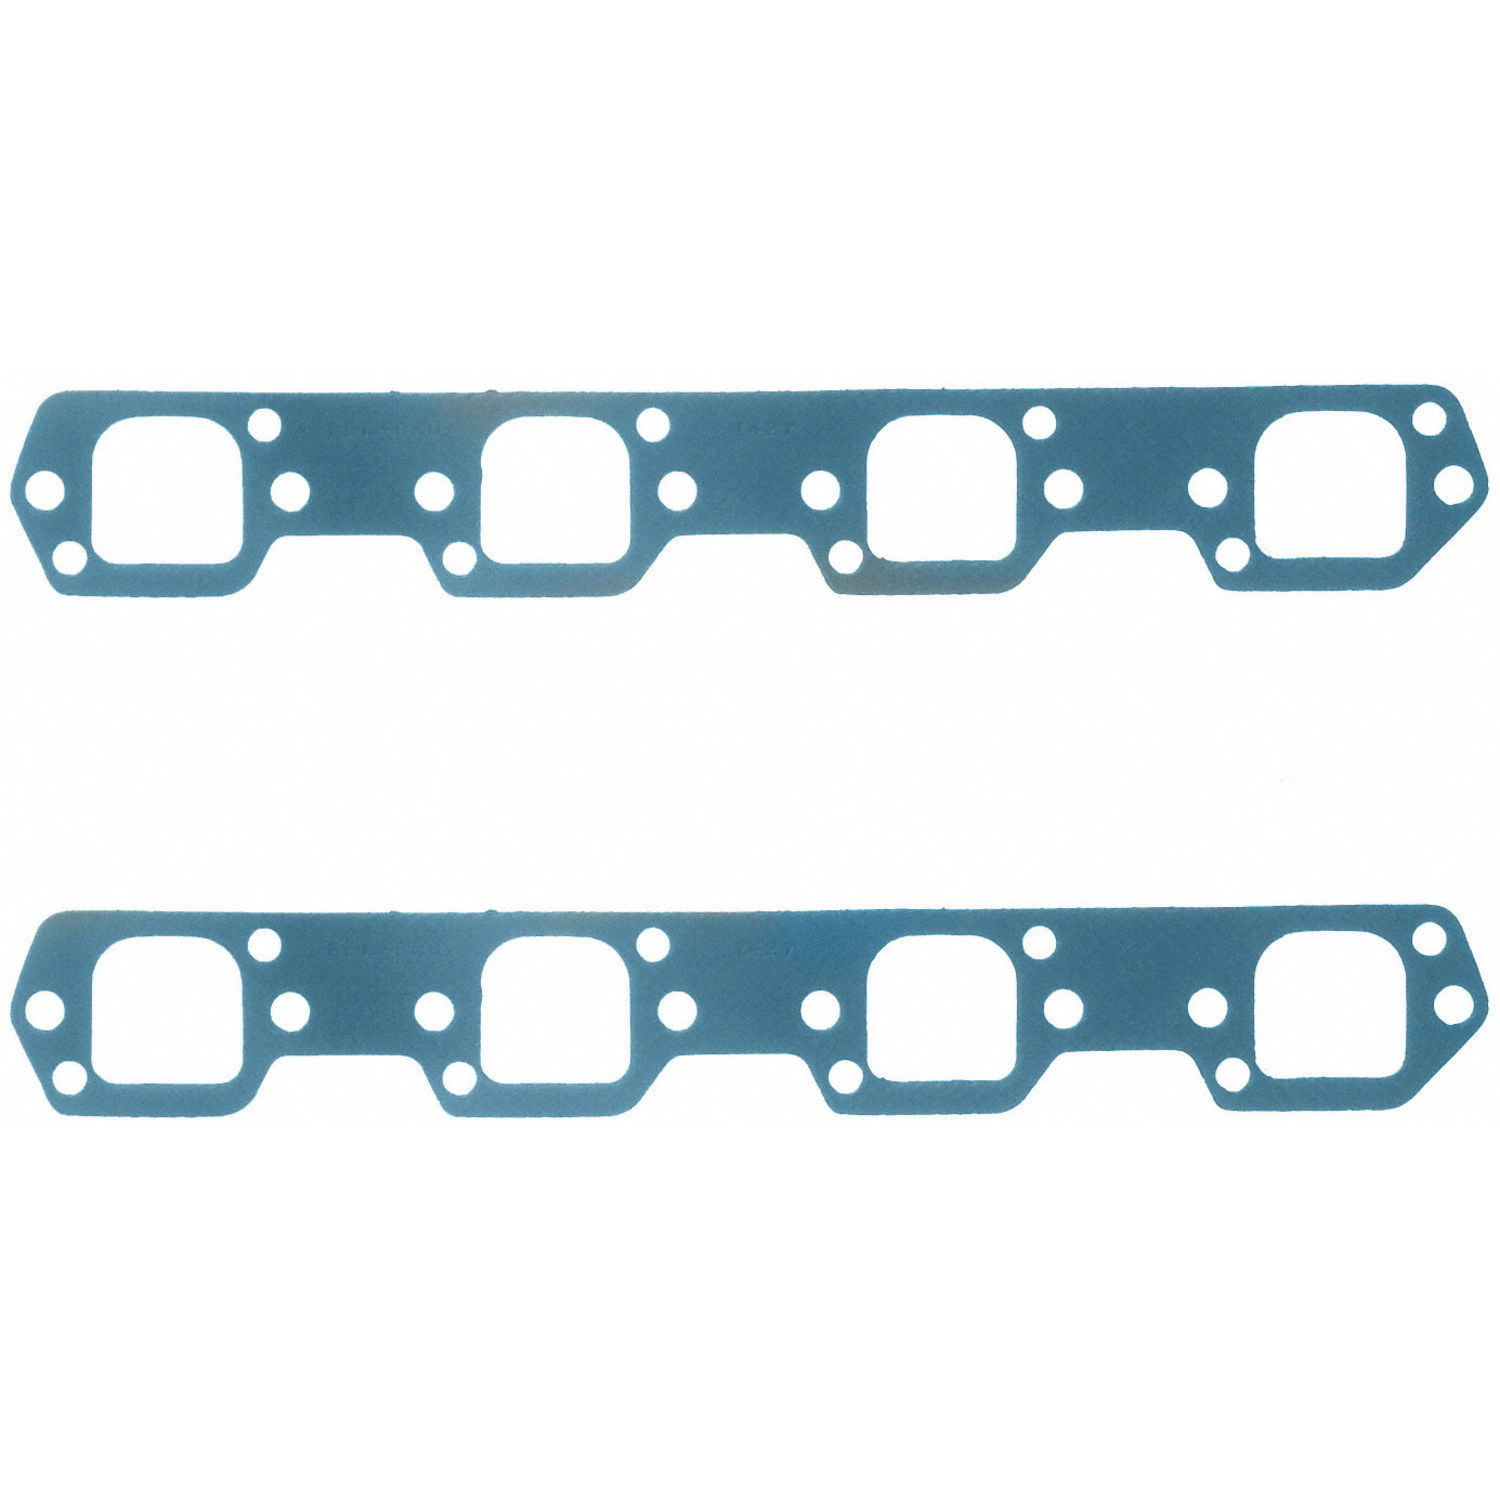 Fel-Pro 1427 SBF Ford Exhaust Header Gasket Set Trick Flow R-Port N Head